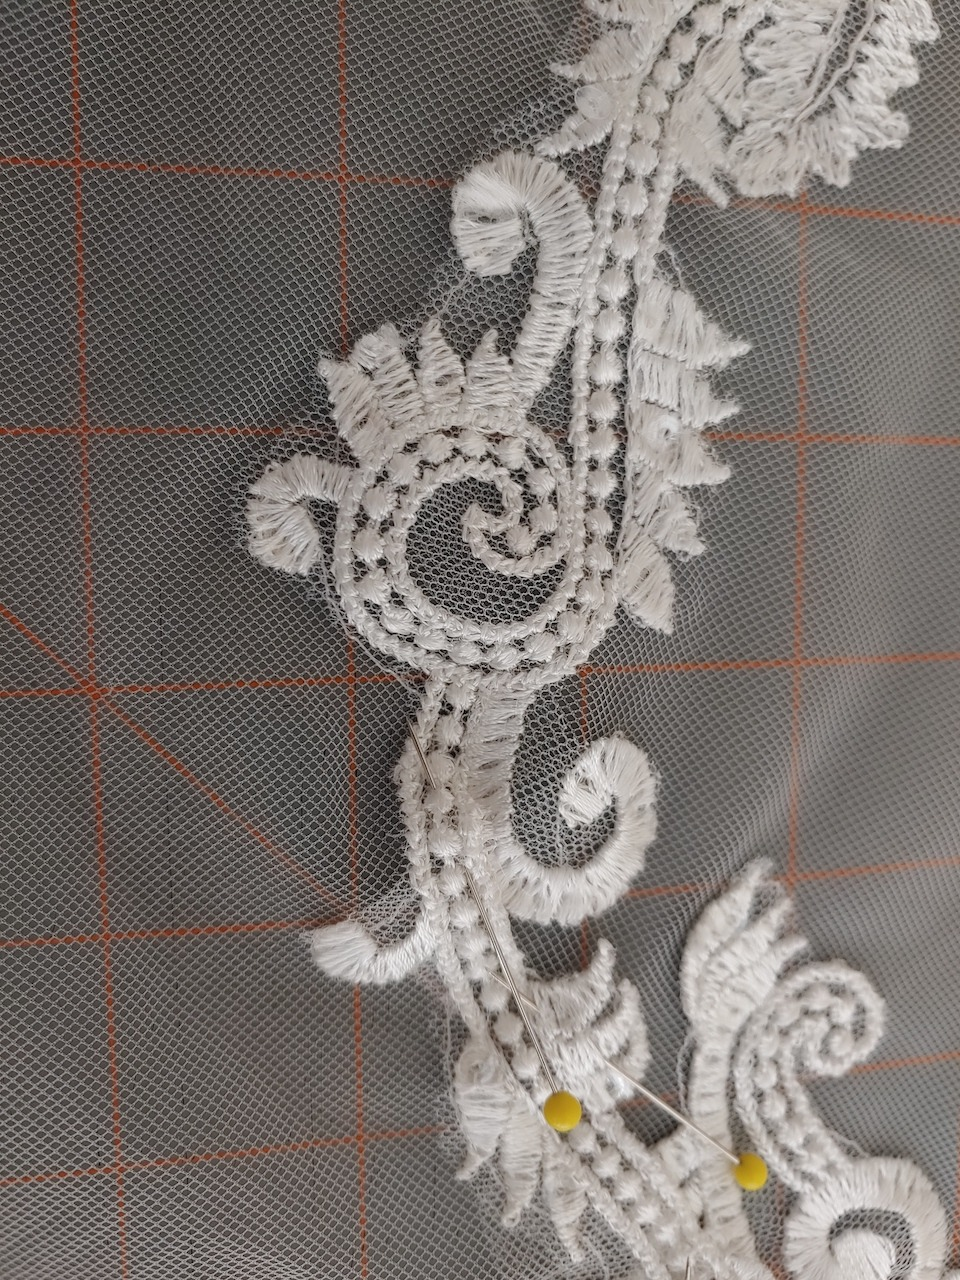 lace patterns for a netting border